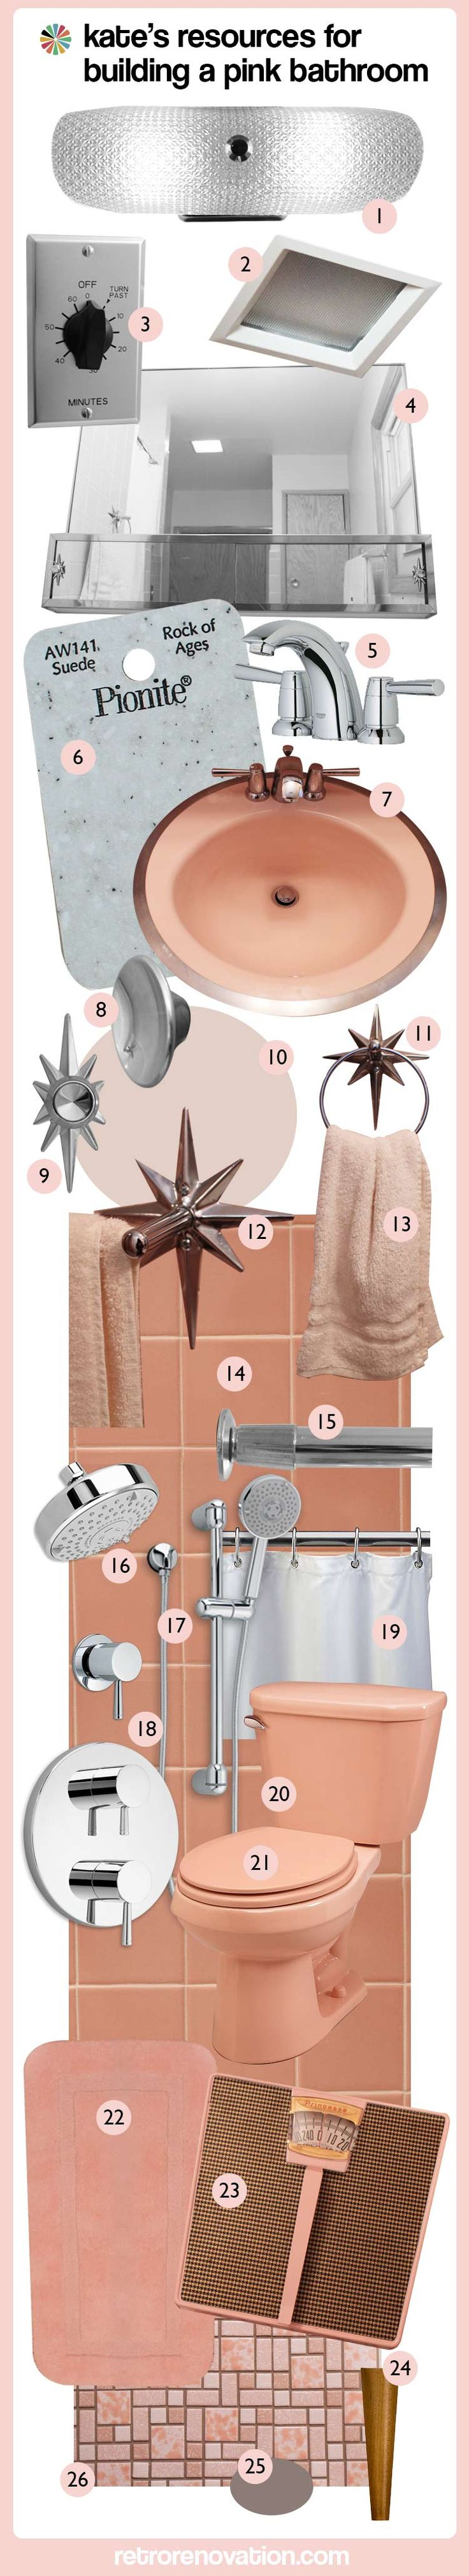 Kate's resources for building a pink bathroom -- 26 key items on her remodel list - Retro Renovation